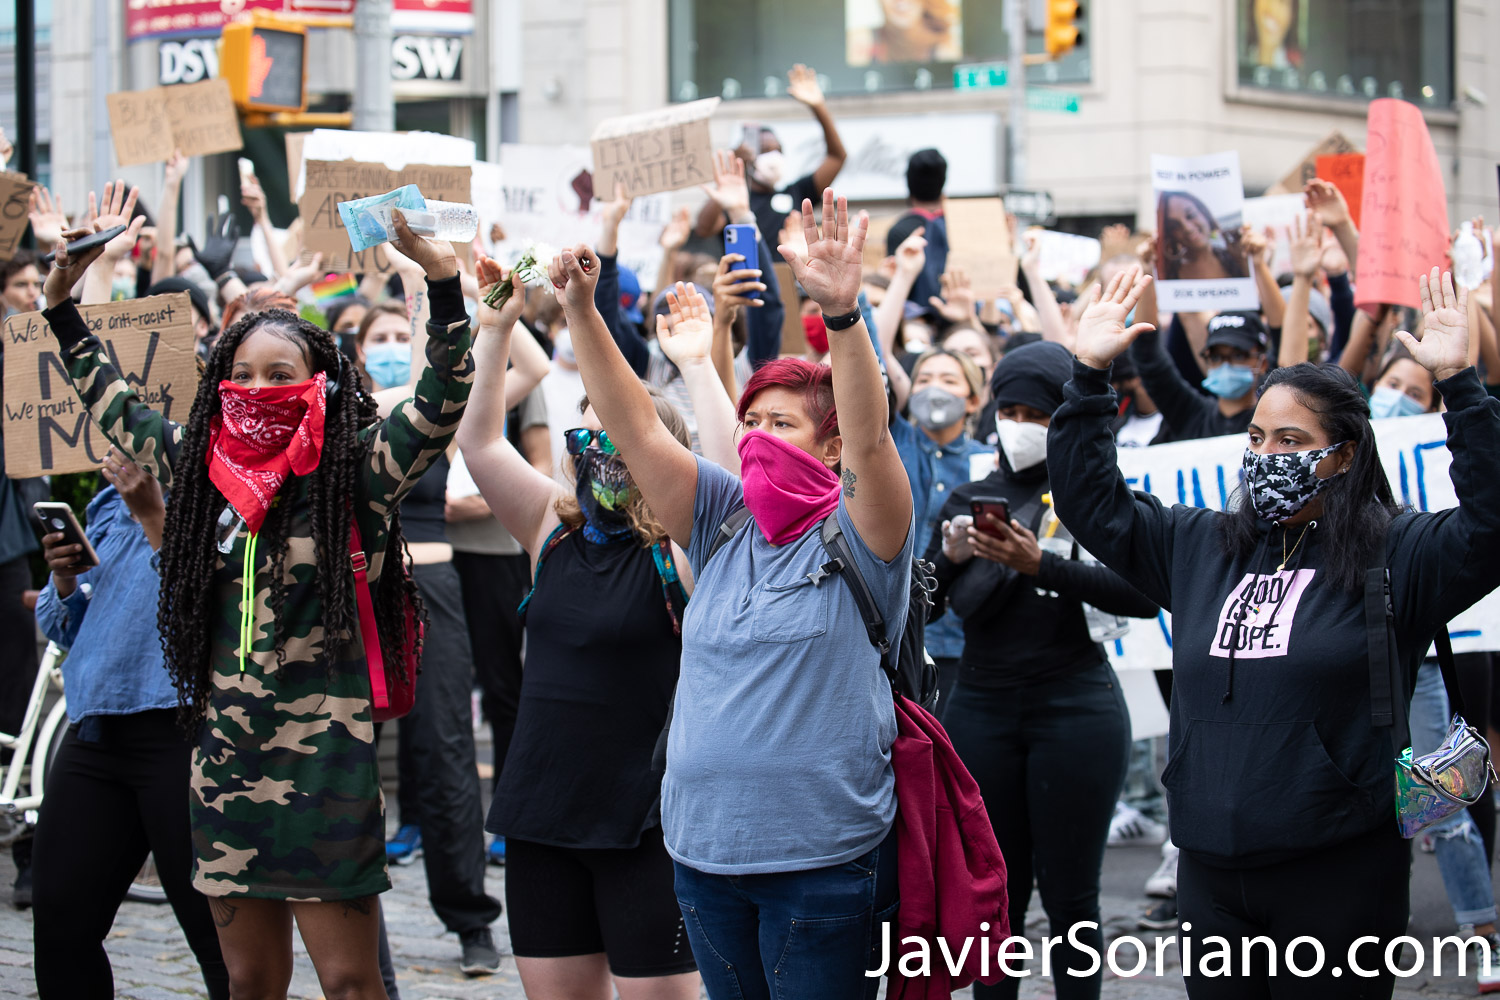 Tuesday, June 2, 2020. New York City - March from The Stonewall Inn to the Lower Manhattan to demand justice for George Floyd, Breonna Taylor, and too many others victims of police violence in the United States of America. Protestors at Union Square. Photo by Javier Soriano/www.JavierSoriano.com